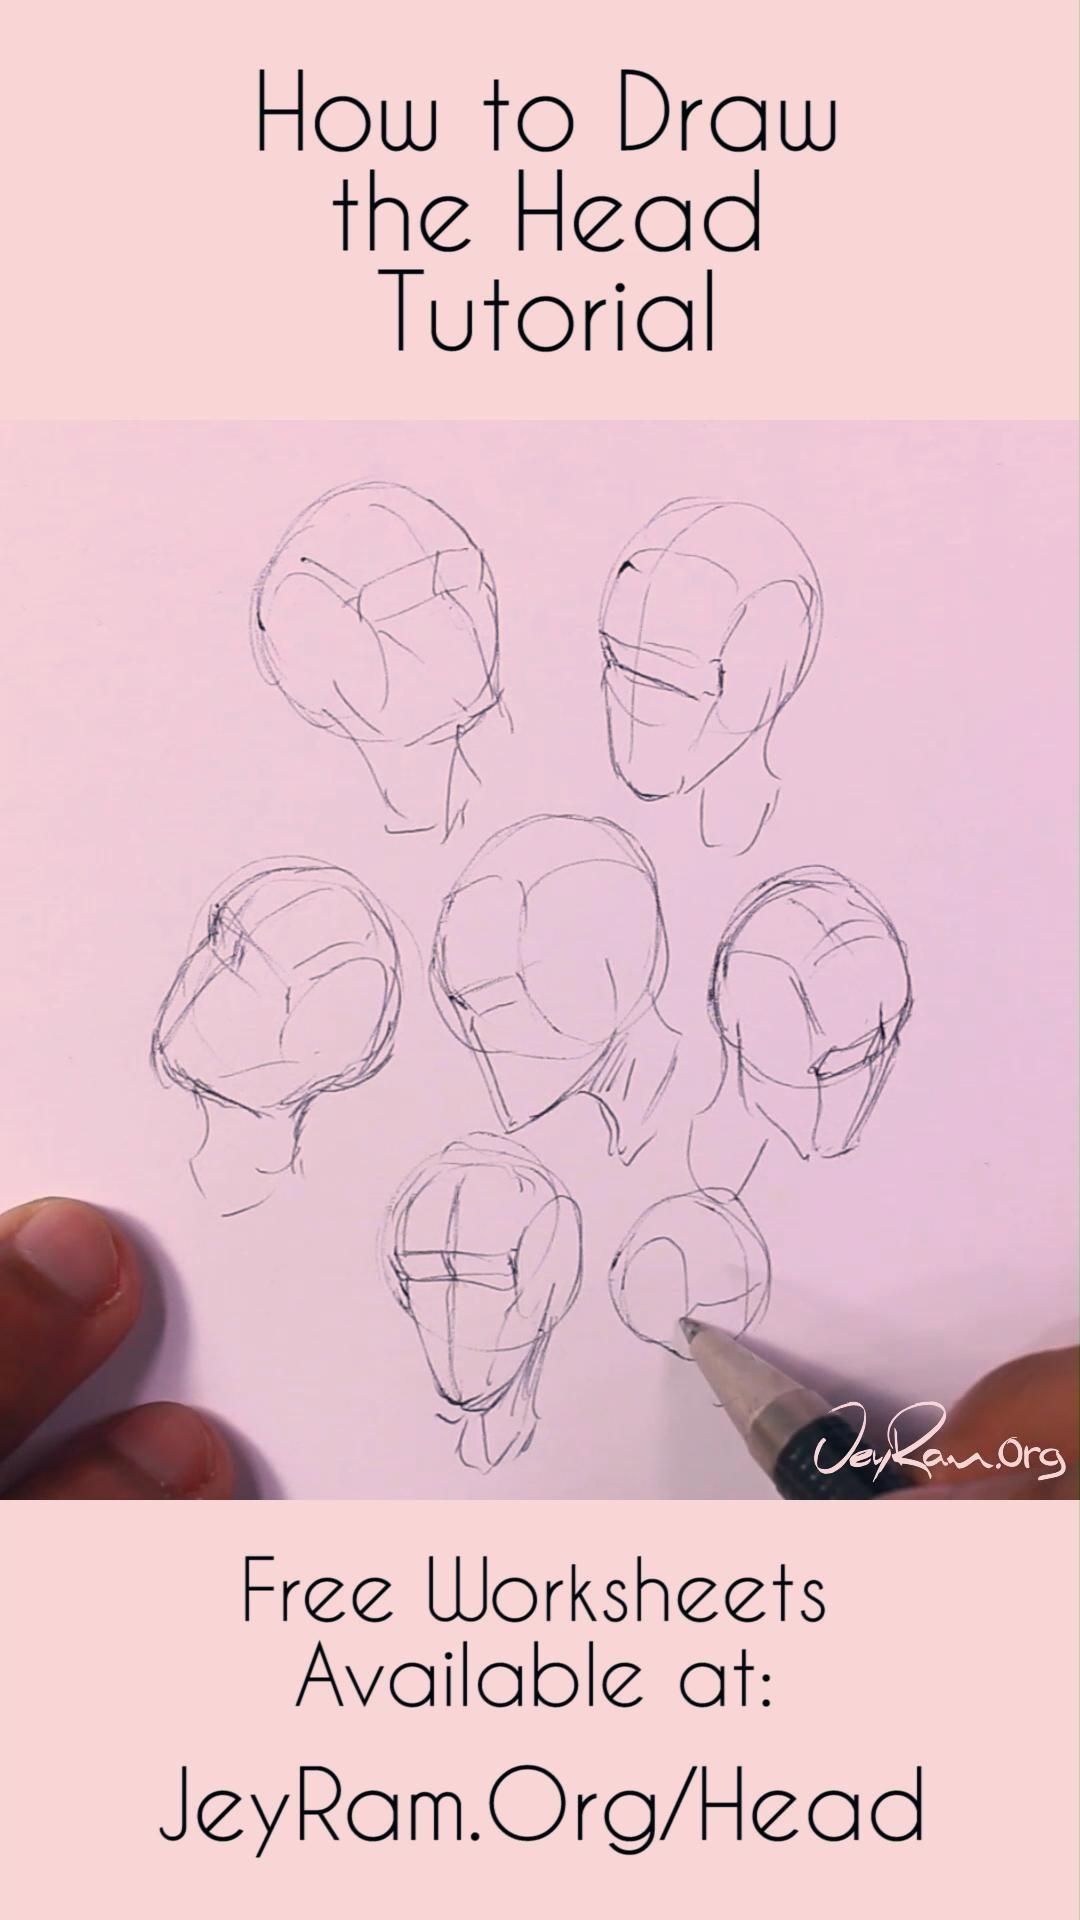 Learn how to draw the human head using this step by step process made for beginners. Grab the free worksheets on the website and learn how to draw the head from any angle by developing a deep understanding of the structure. Drawing human anatomy is immensely satisfying and these free worksheets will help you make quick progress! #tutorial #drawing #draw #howtodraw #anatomy #illustration #art #artist